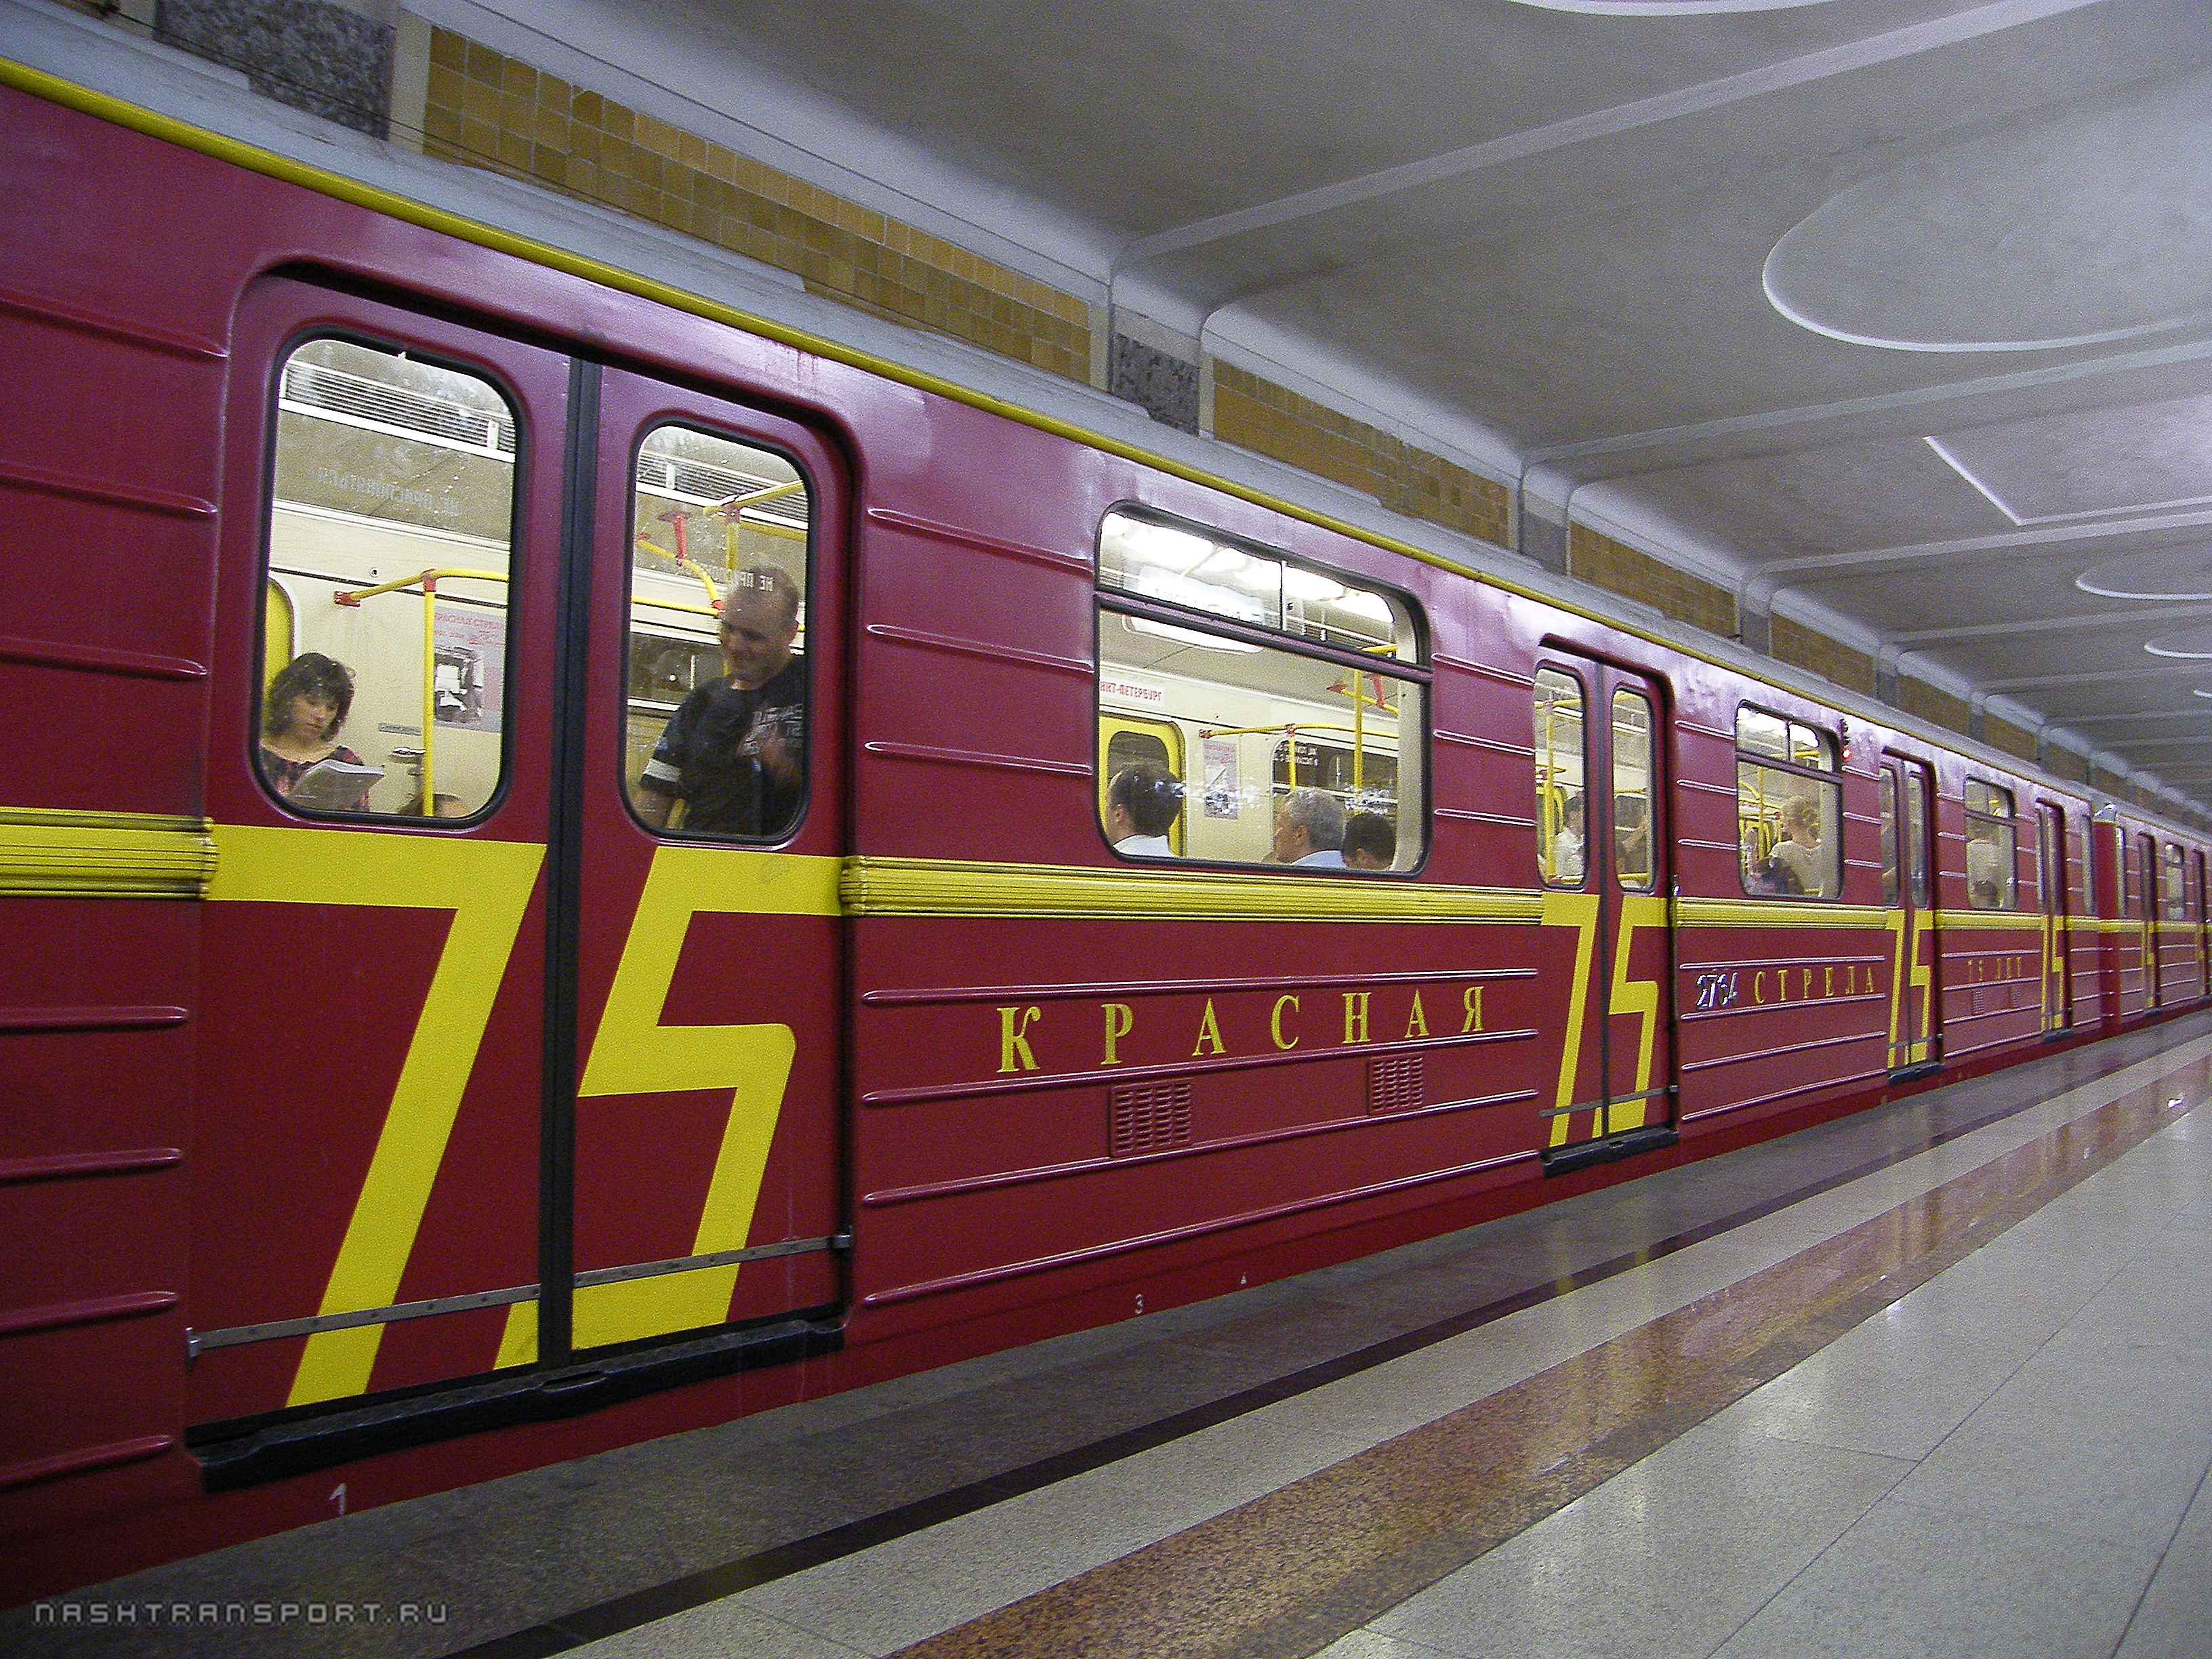 http://wiki.nashtransport.ru/images/e/e0/Москва_Красная_стрела_2.jpg